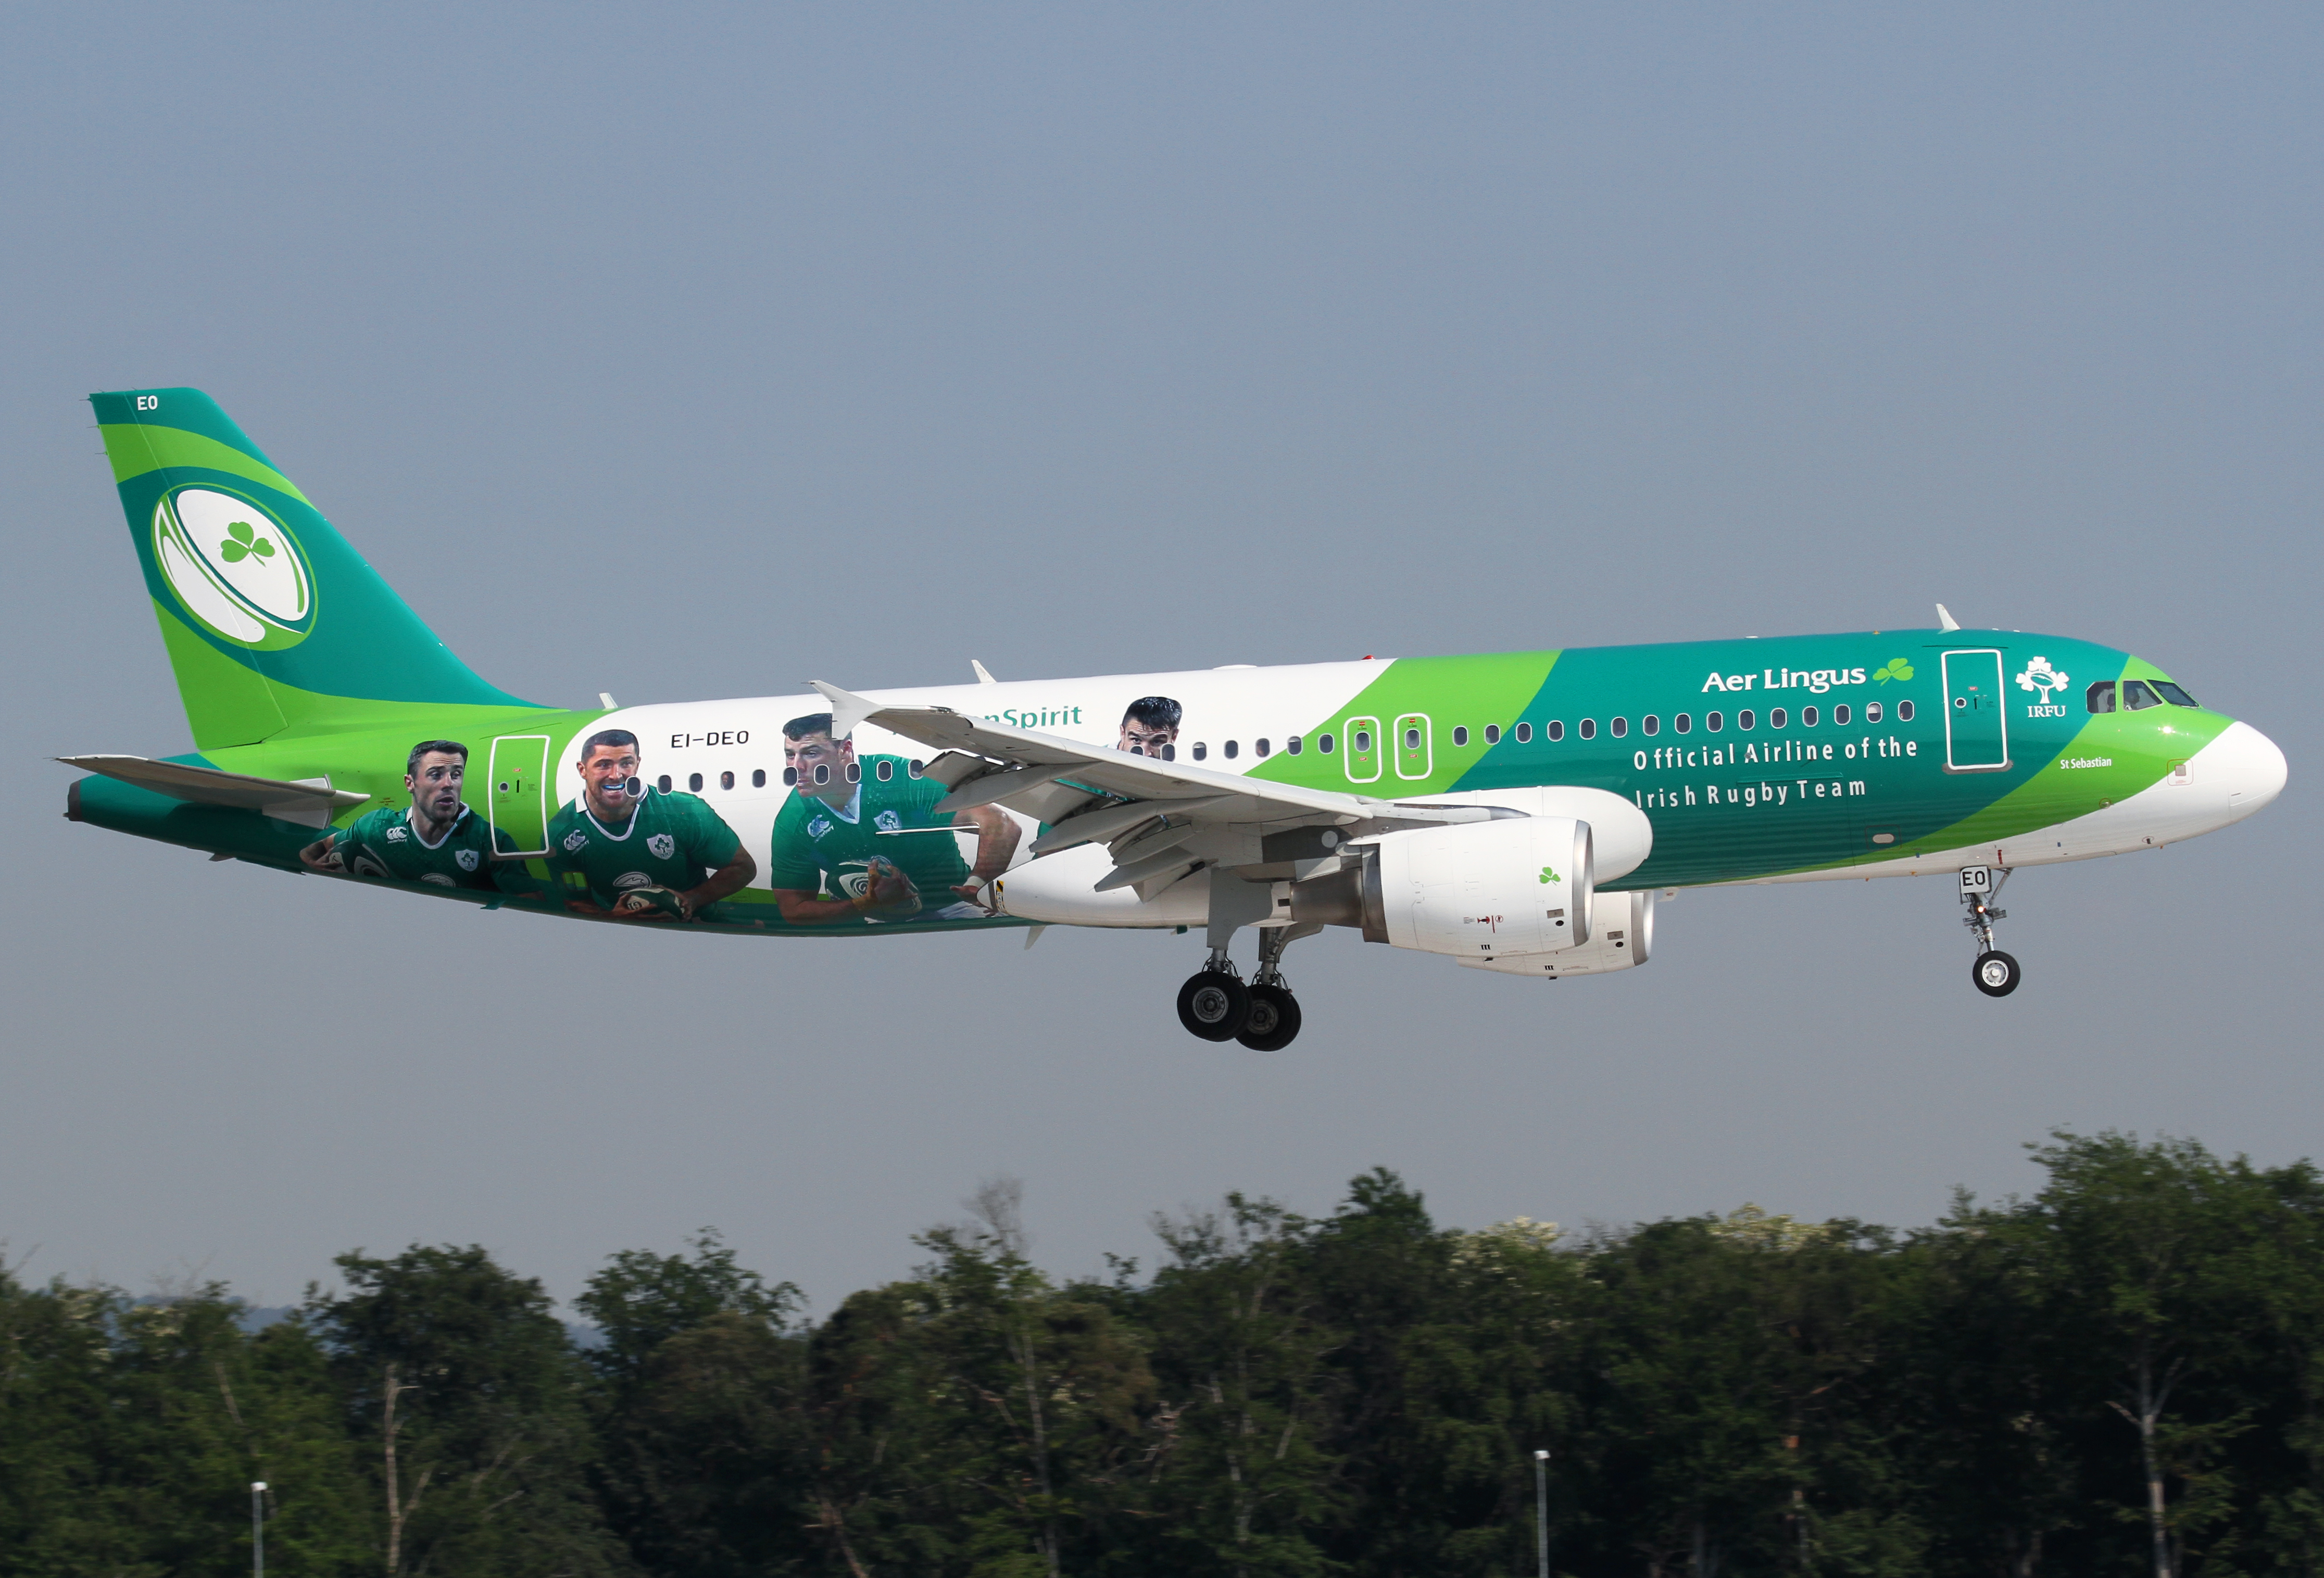 Aer Lingus' latest special scheme landing on RWY07L inbound from Dublin DUB. First visit in this nice livery. Delivered 07/2005.